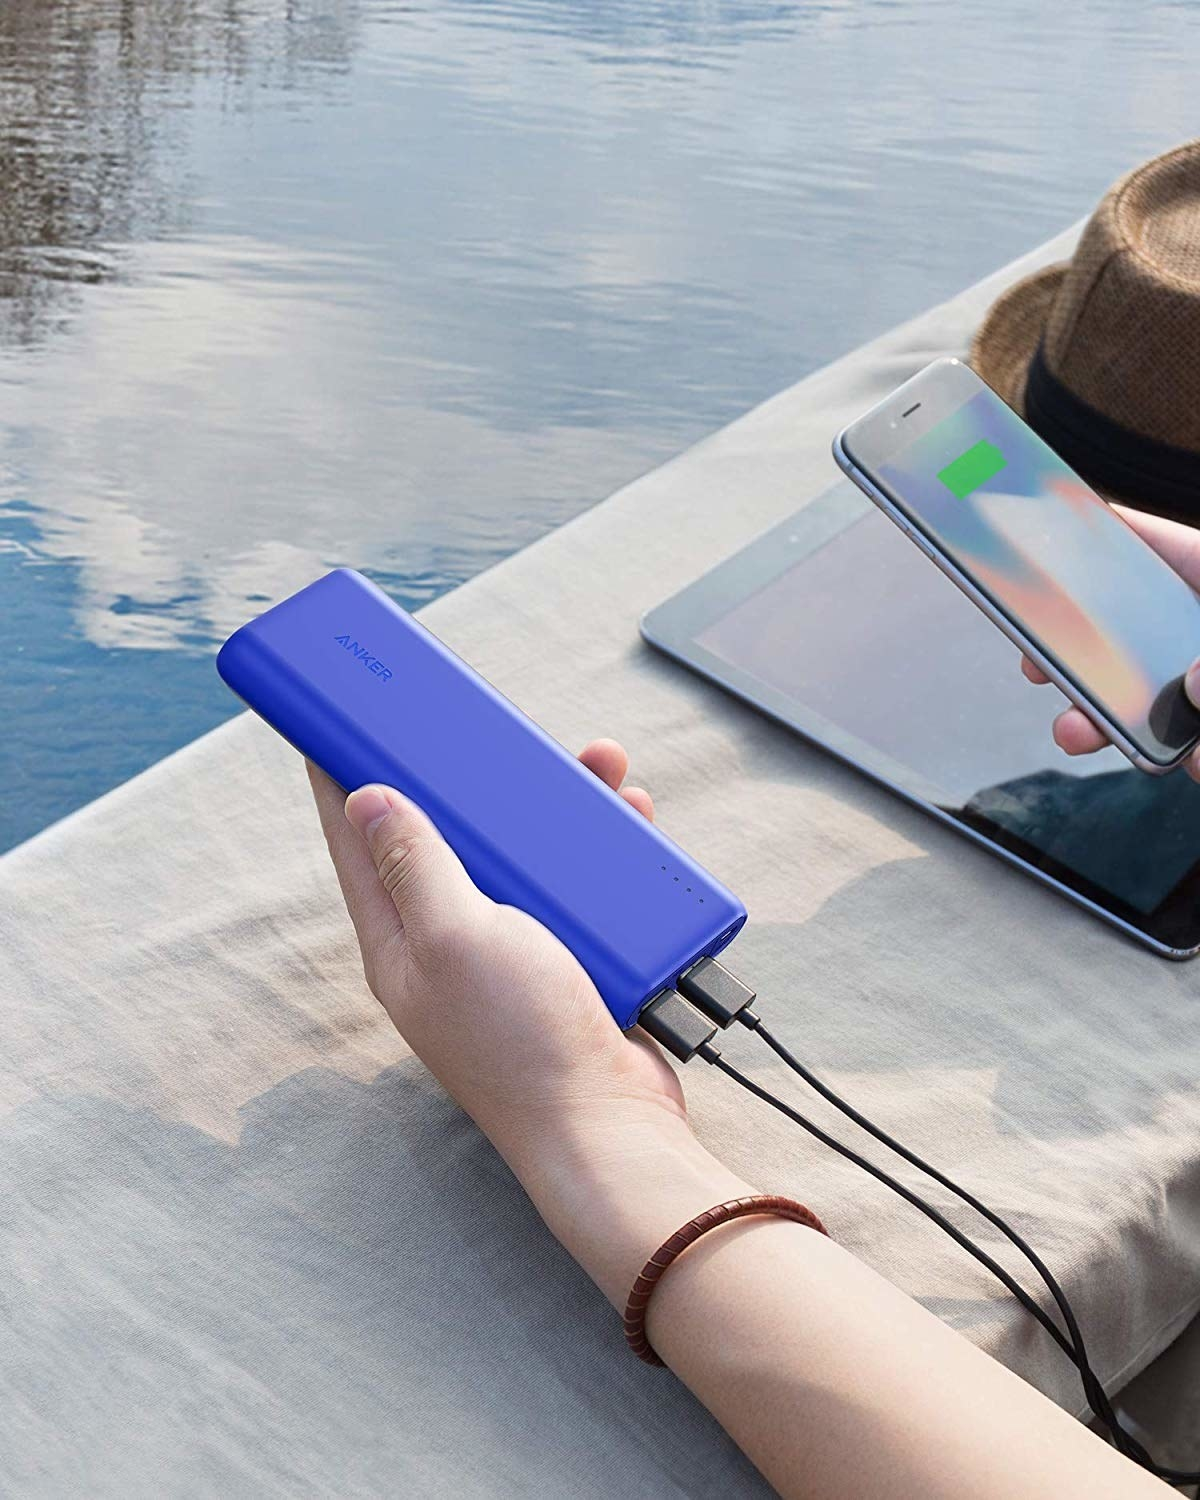 a hand holding the blue portable charger